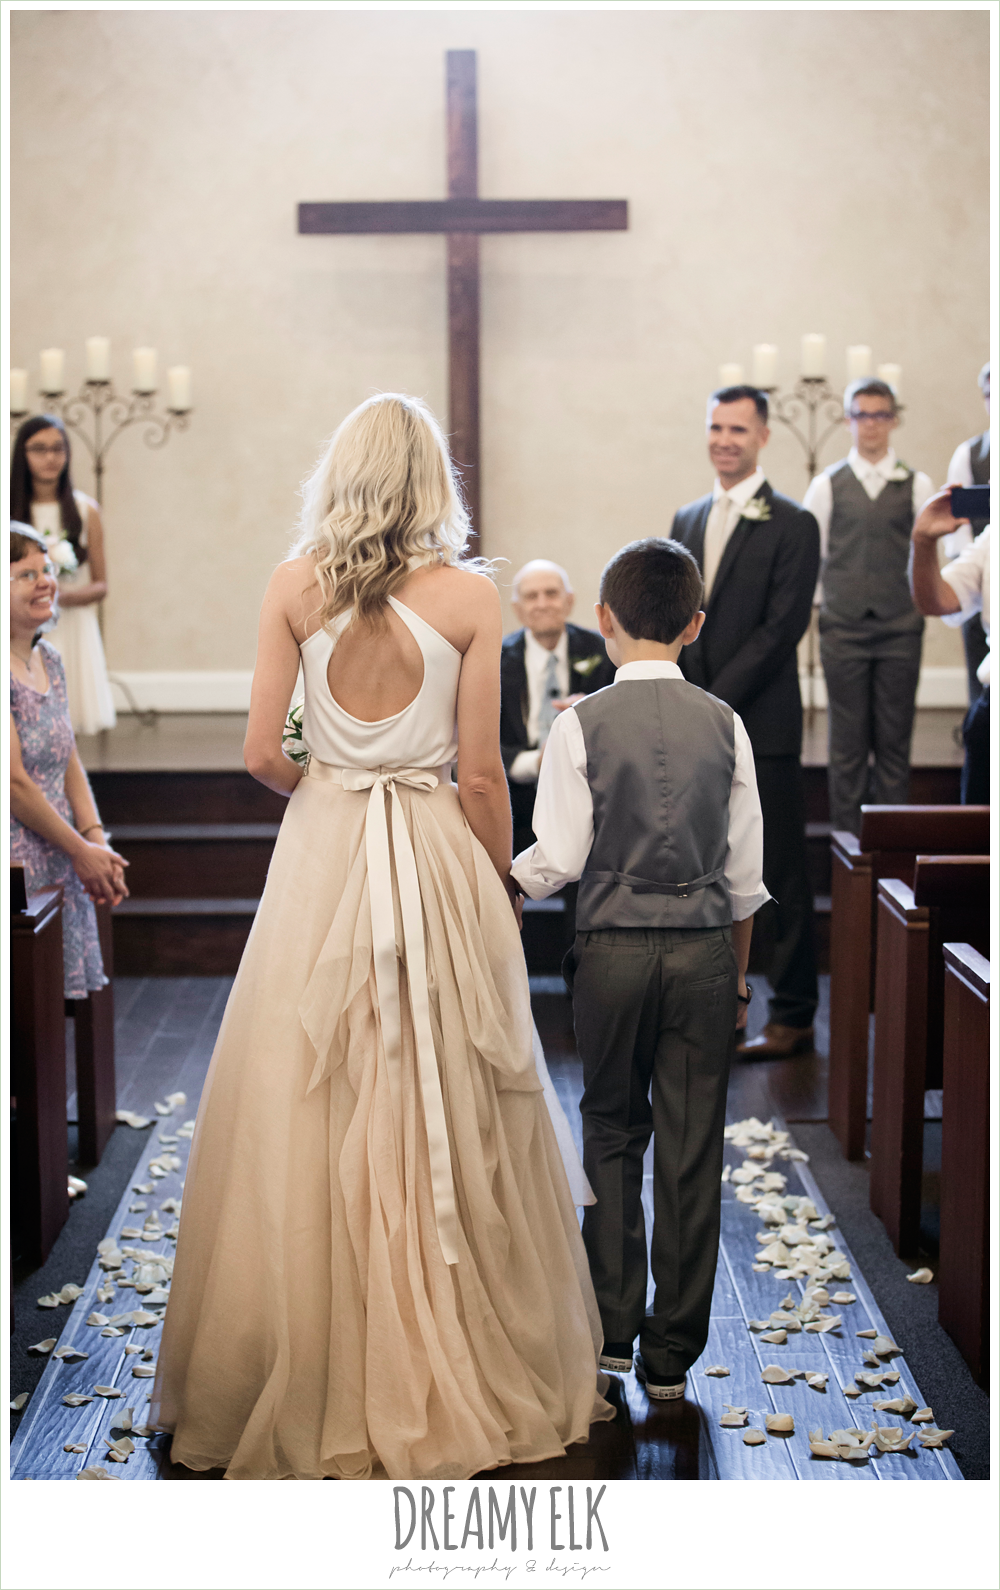 wedding ceremony, bride and son walking down the aisle, carol hannah kensington halter and blush skirt, july summer morning wedding, ashelynn manor, magnolia, texas {dreamy elk photography and design} photo